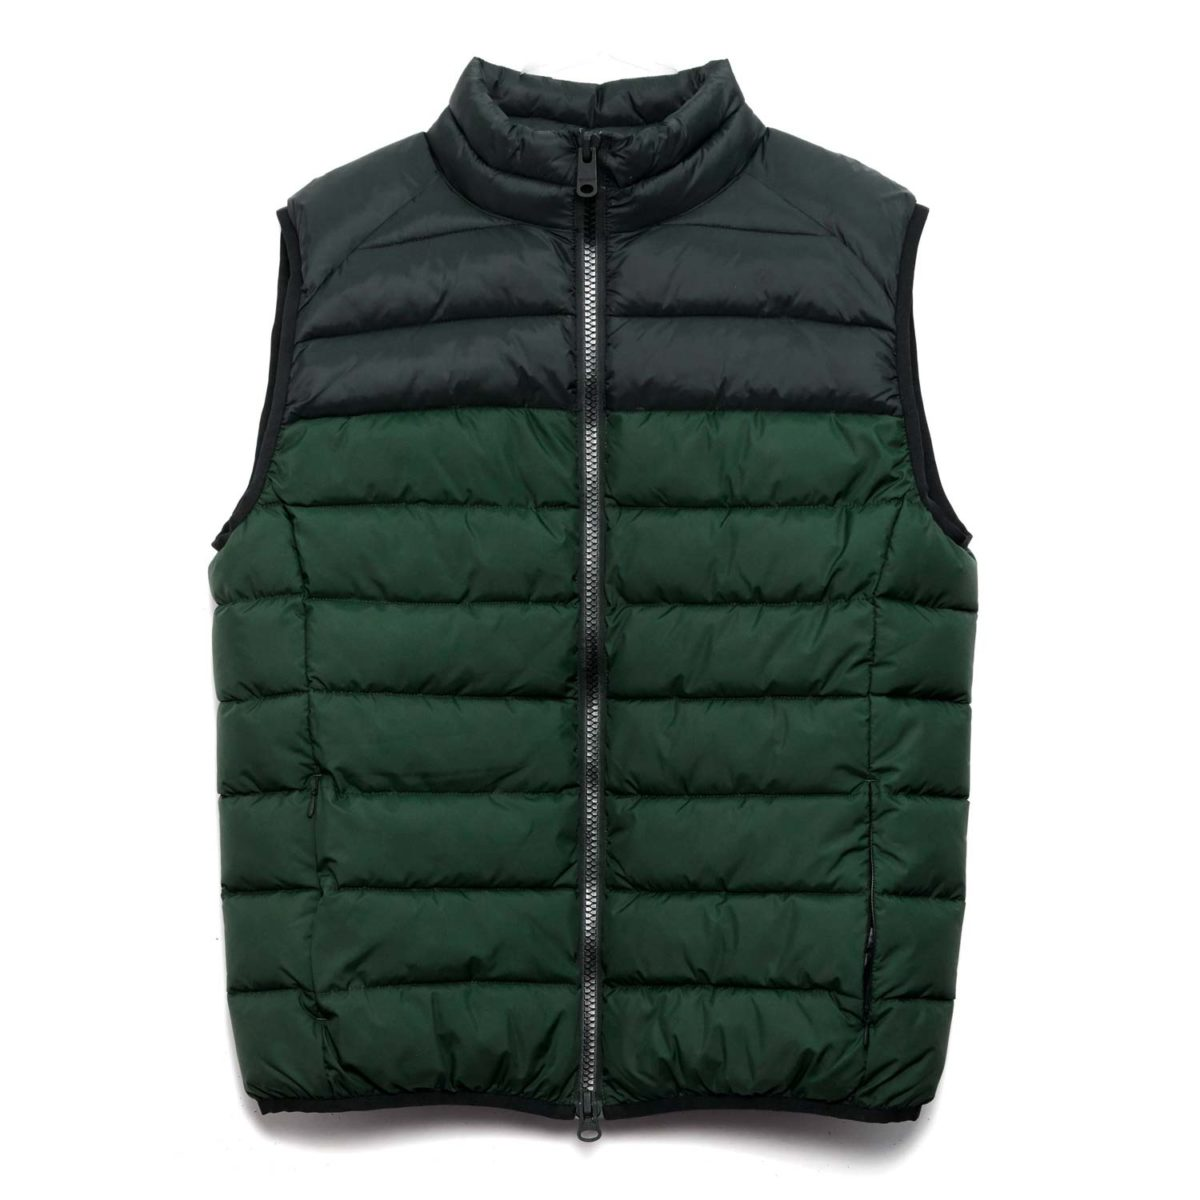 st moritz hiking vest vegan ecoalf korean green